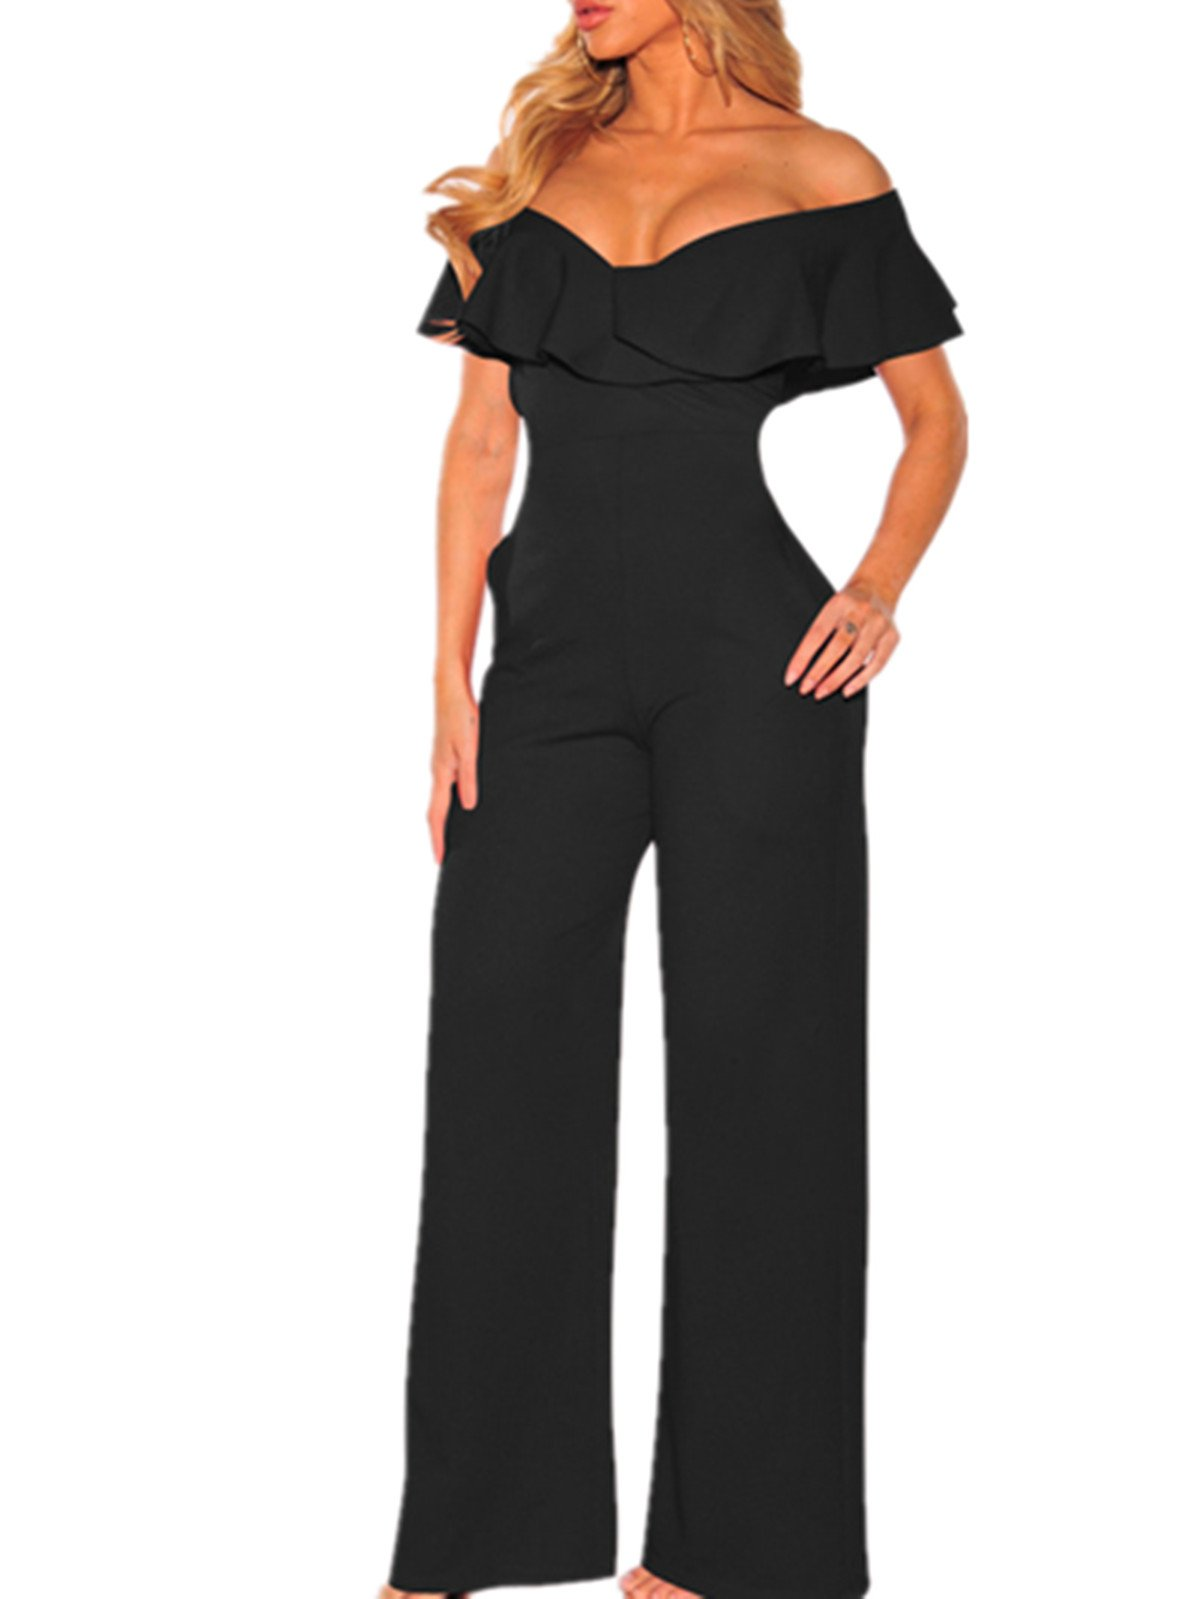 AVINE Women's Sexy V Neck High Waist Clubwear Wide Leg Long Pants Jumpsuit Rompers (Small, Black 2)